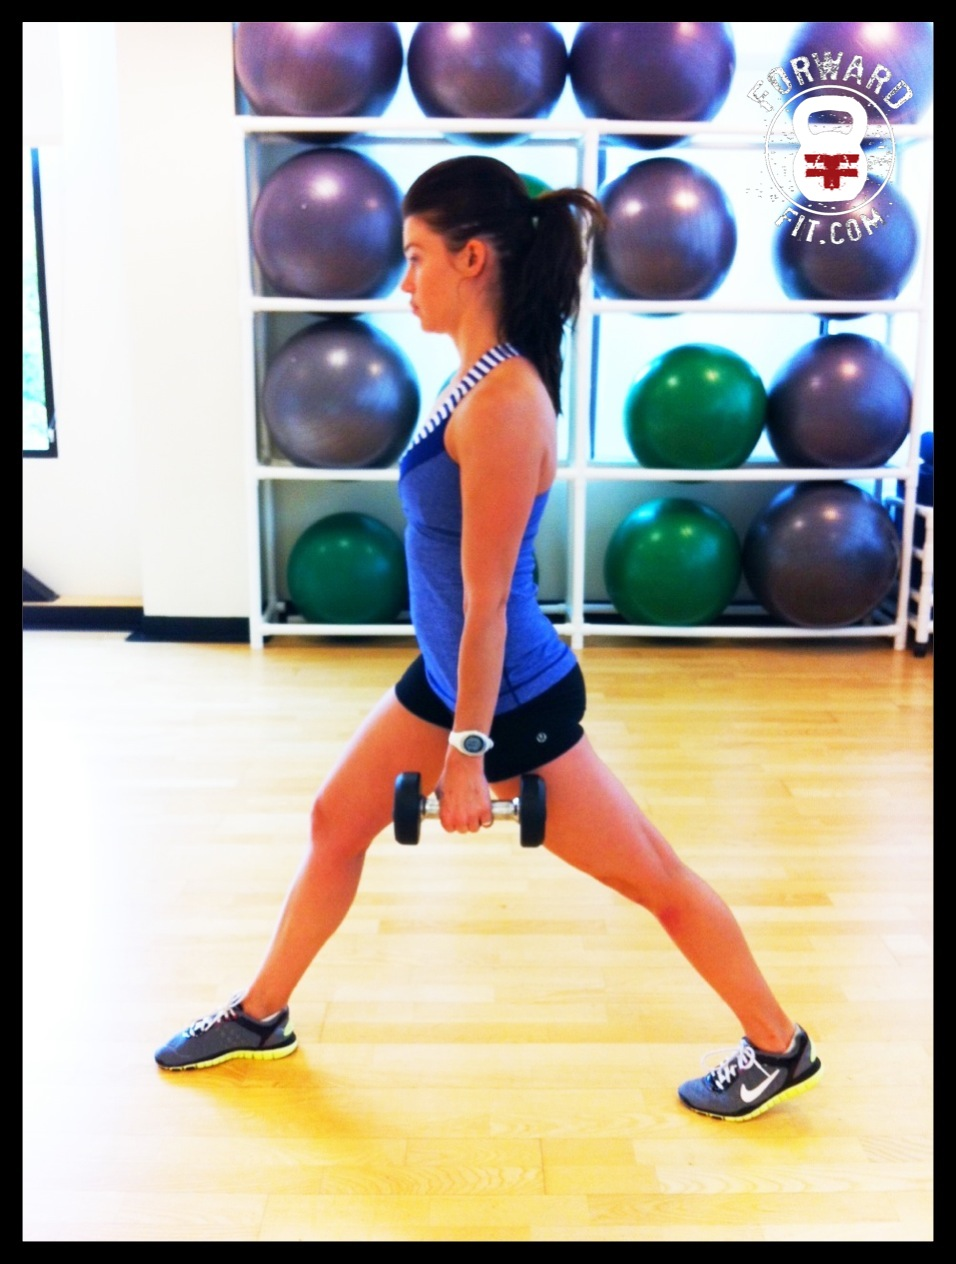 Lunges Dumbbell 2